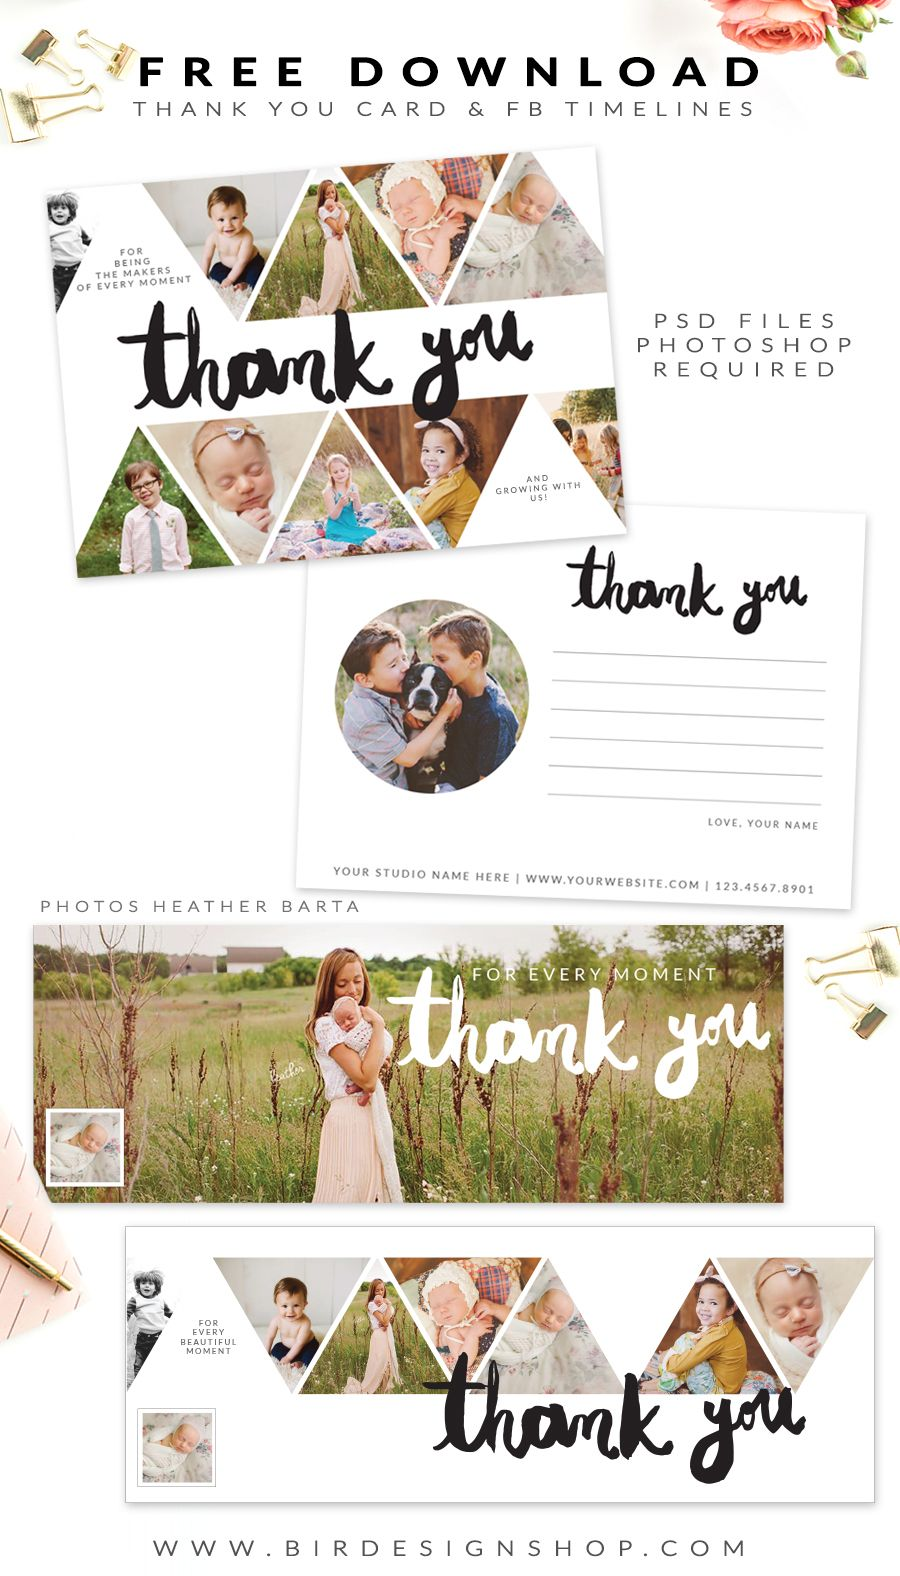 FREE - Thank you card and facebook timelines | Minding my business ...